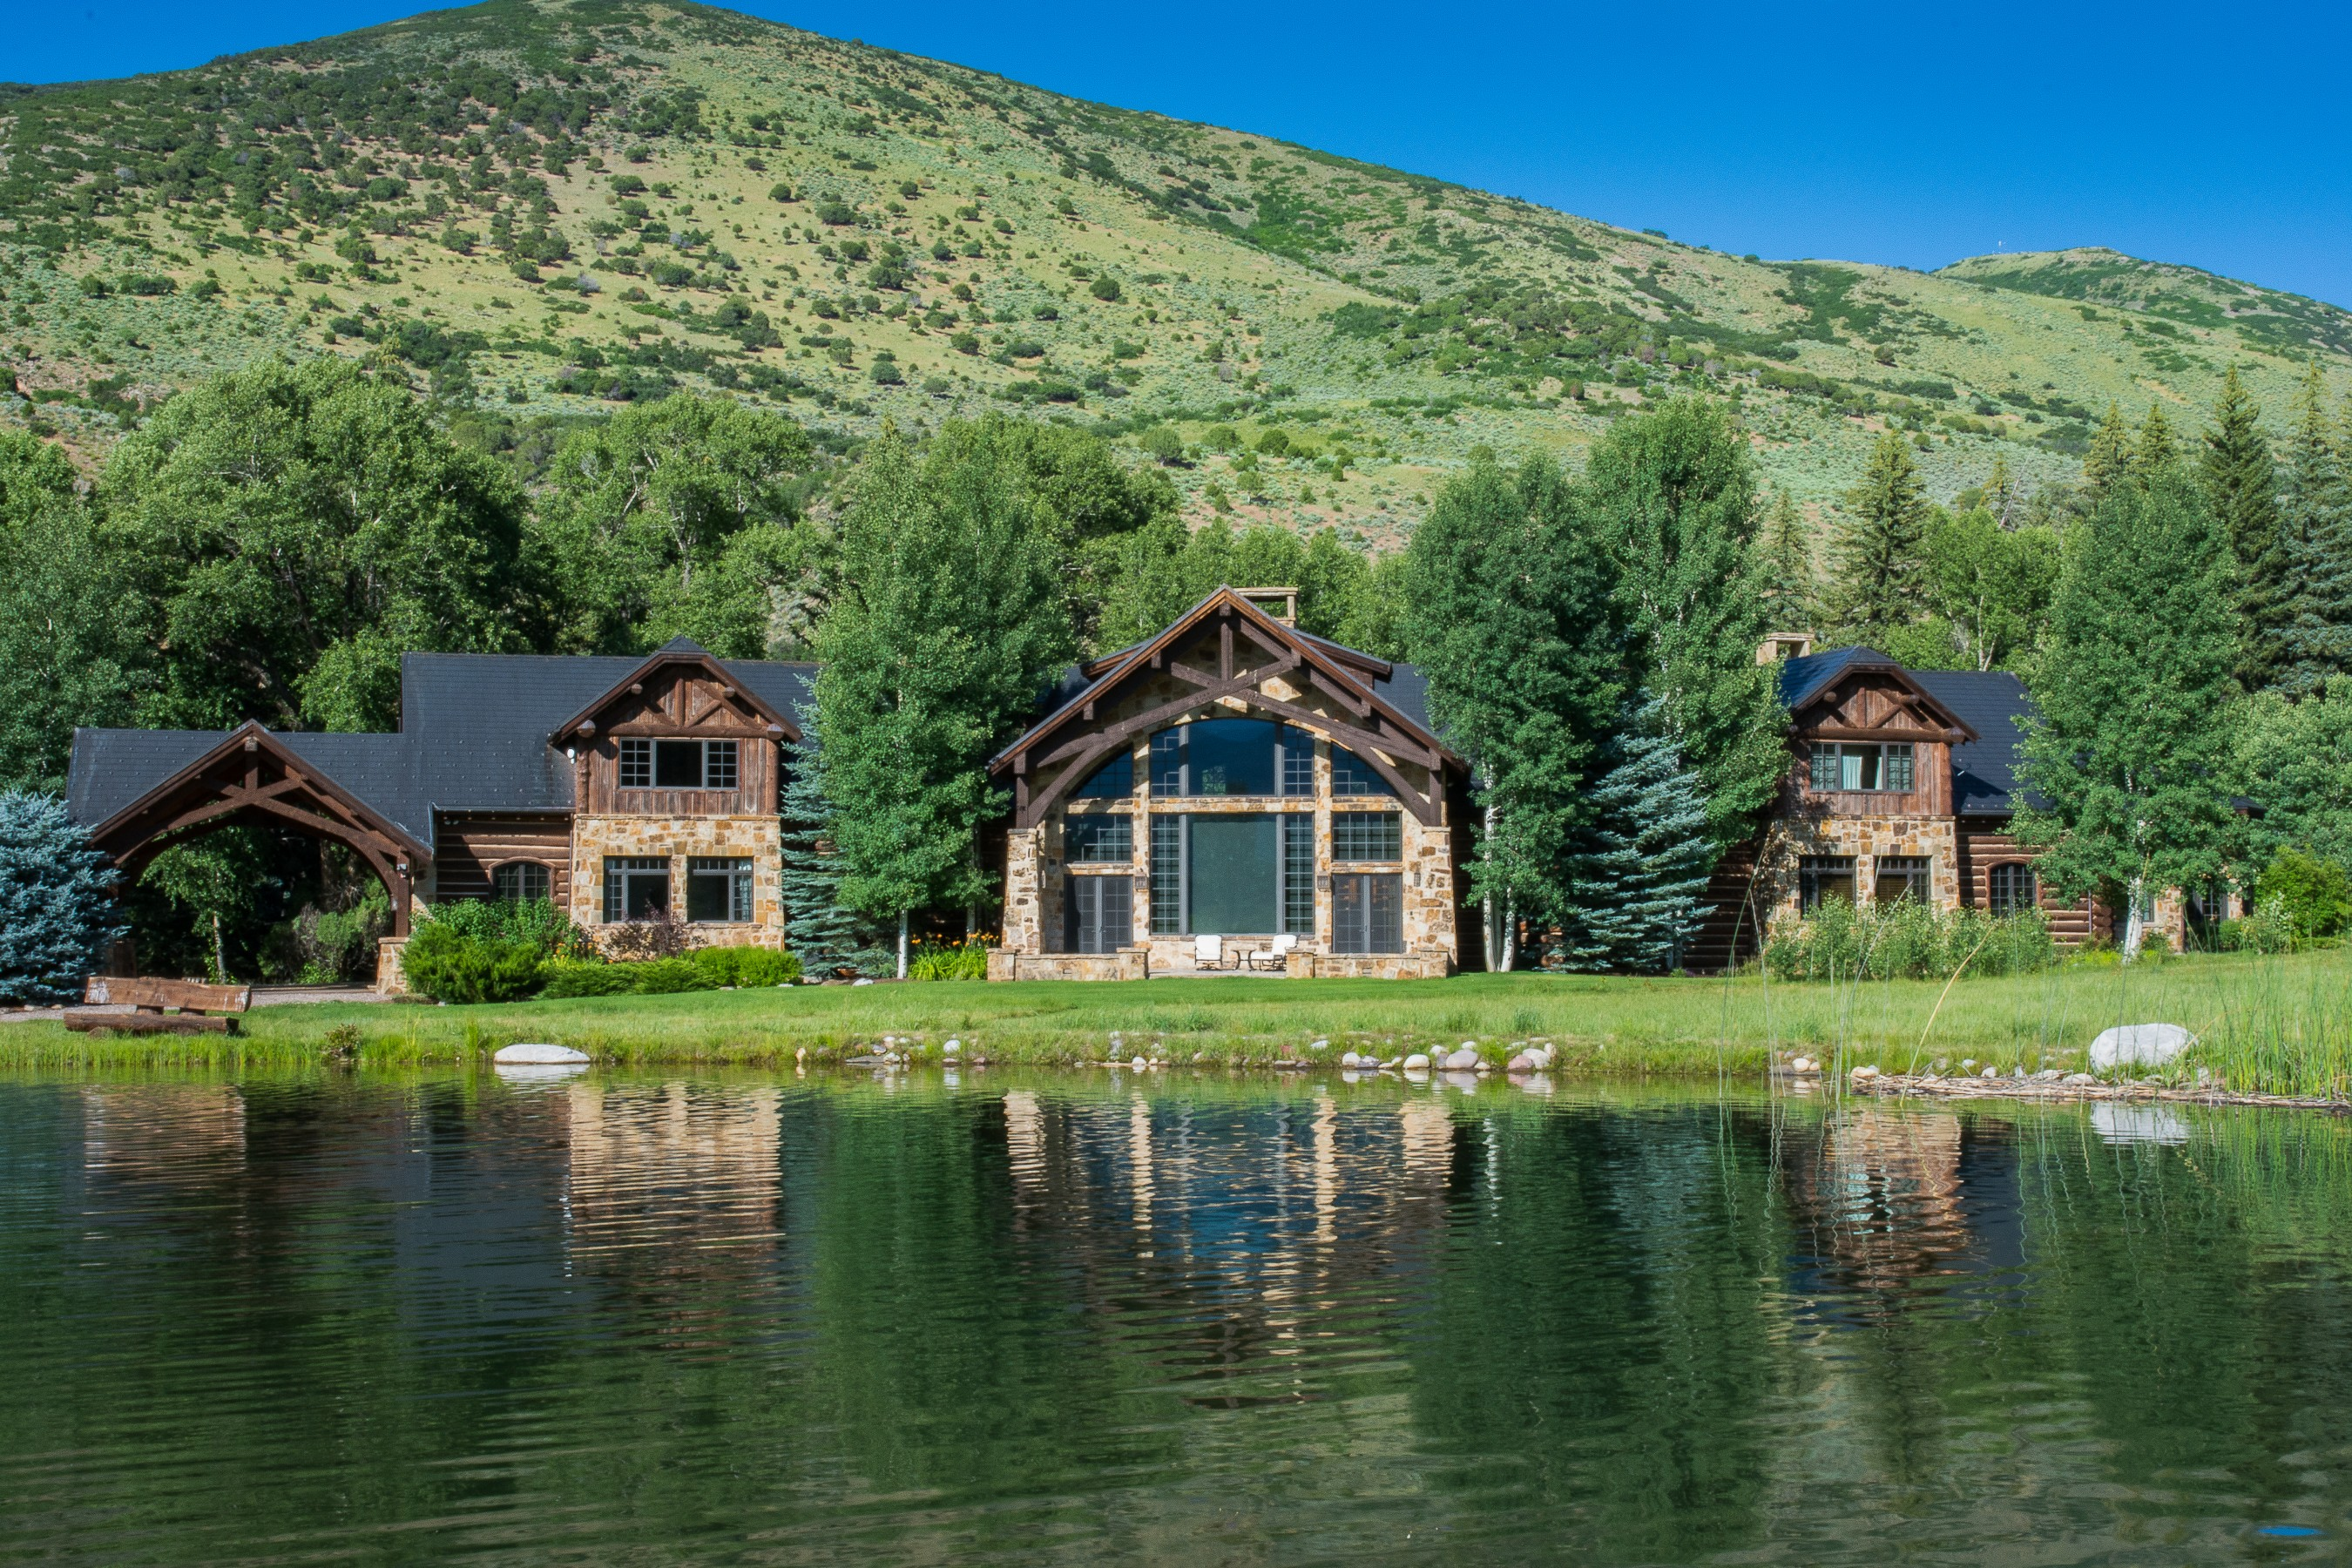 단독 가정 주택 용 매매 에 Spectacular Ranch on Snowmass Creek 22802288 Snowmass Creek Road Snowmass, 콜로라도, 81654 미국에서/약: Aspen